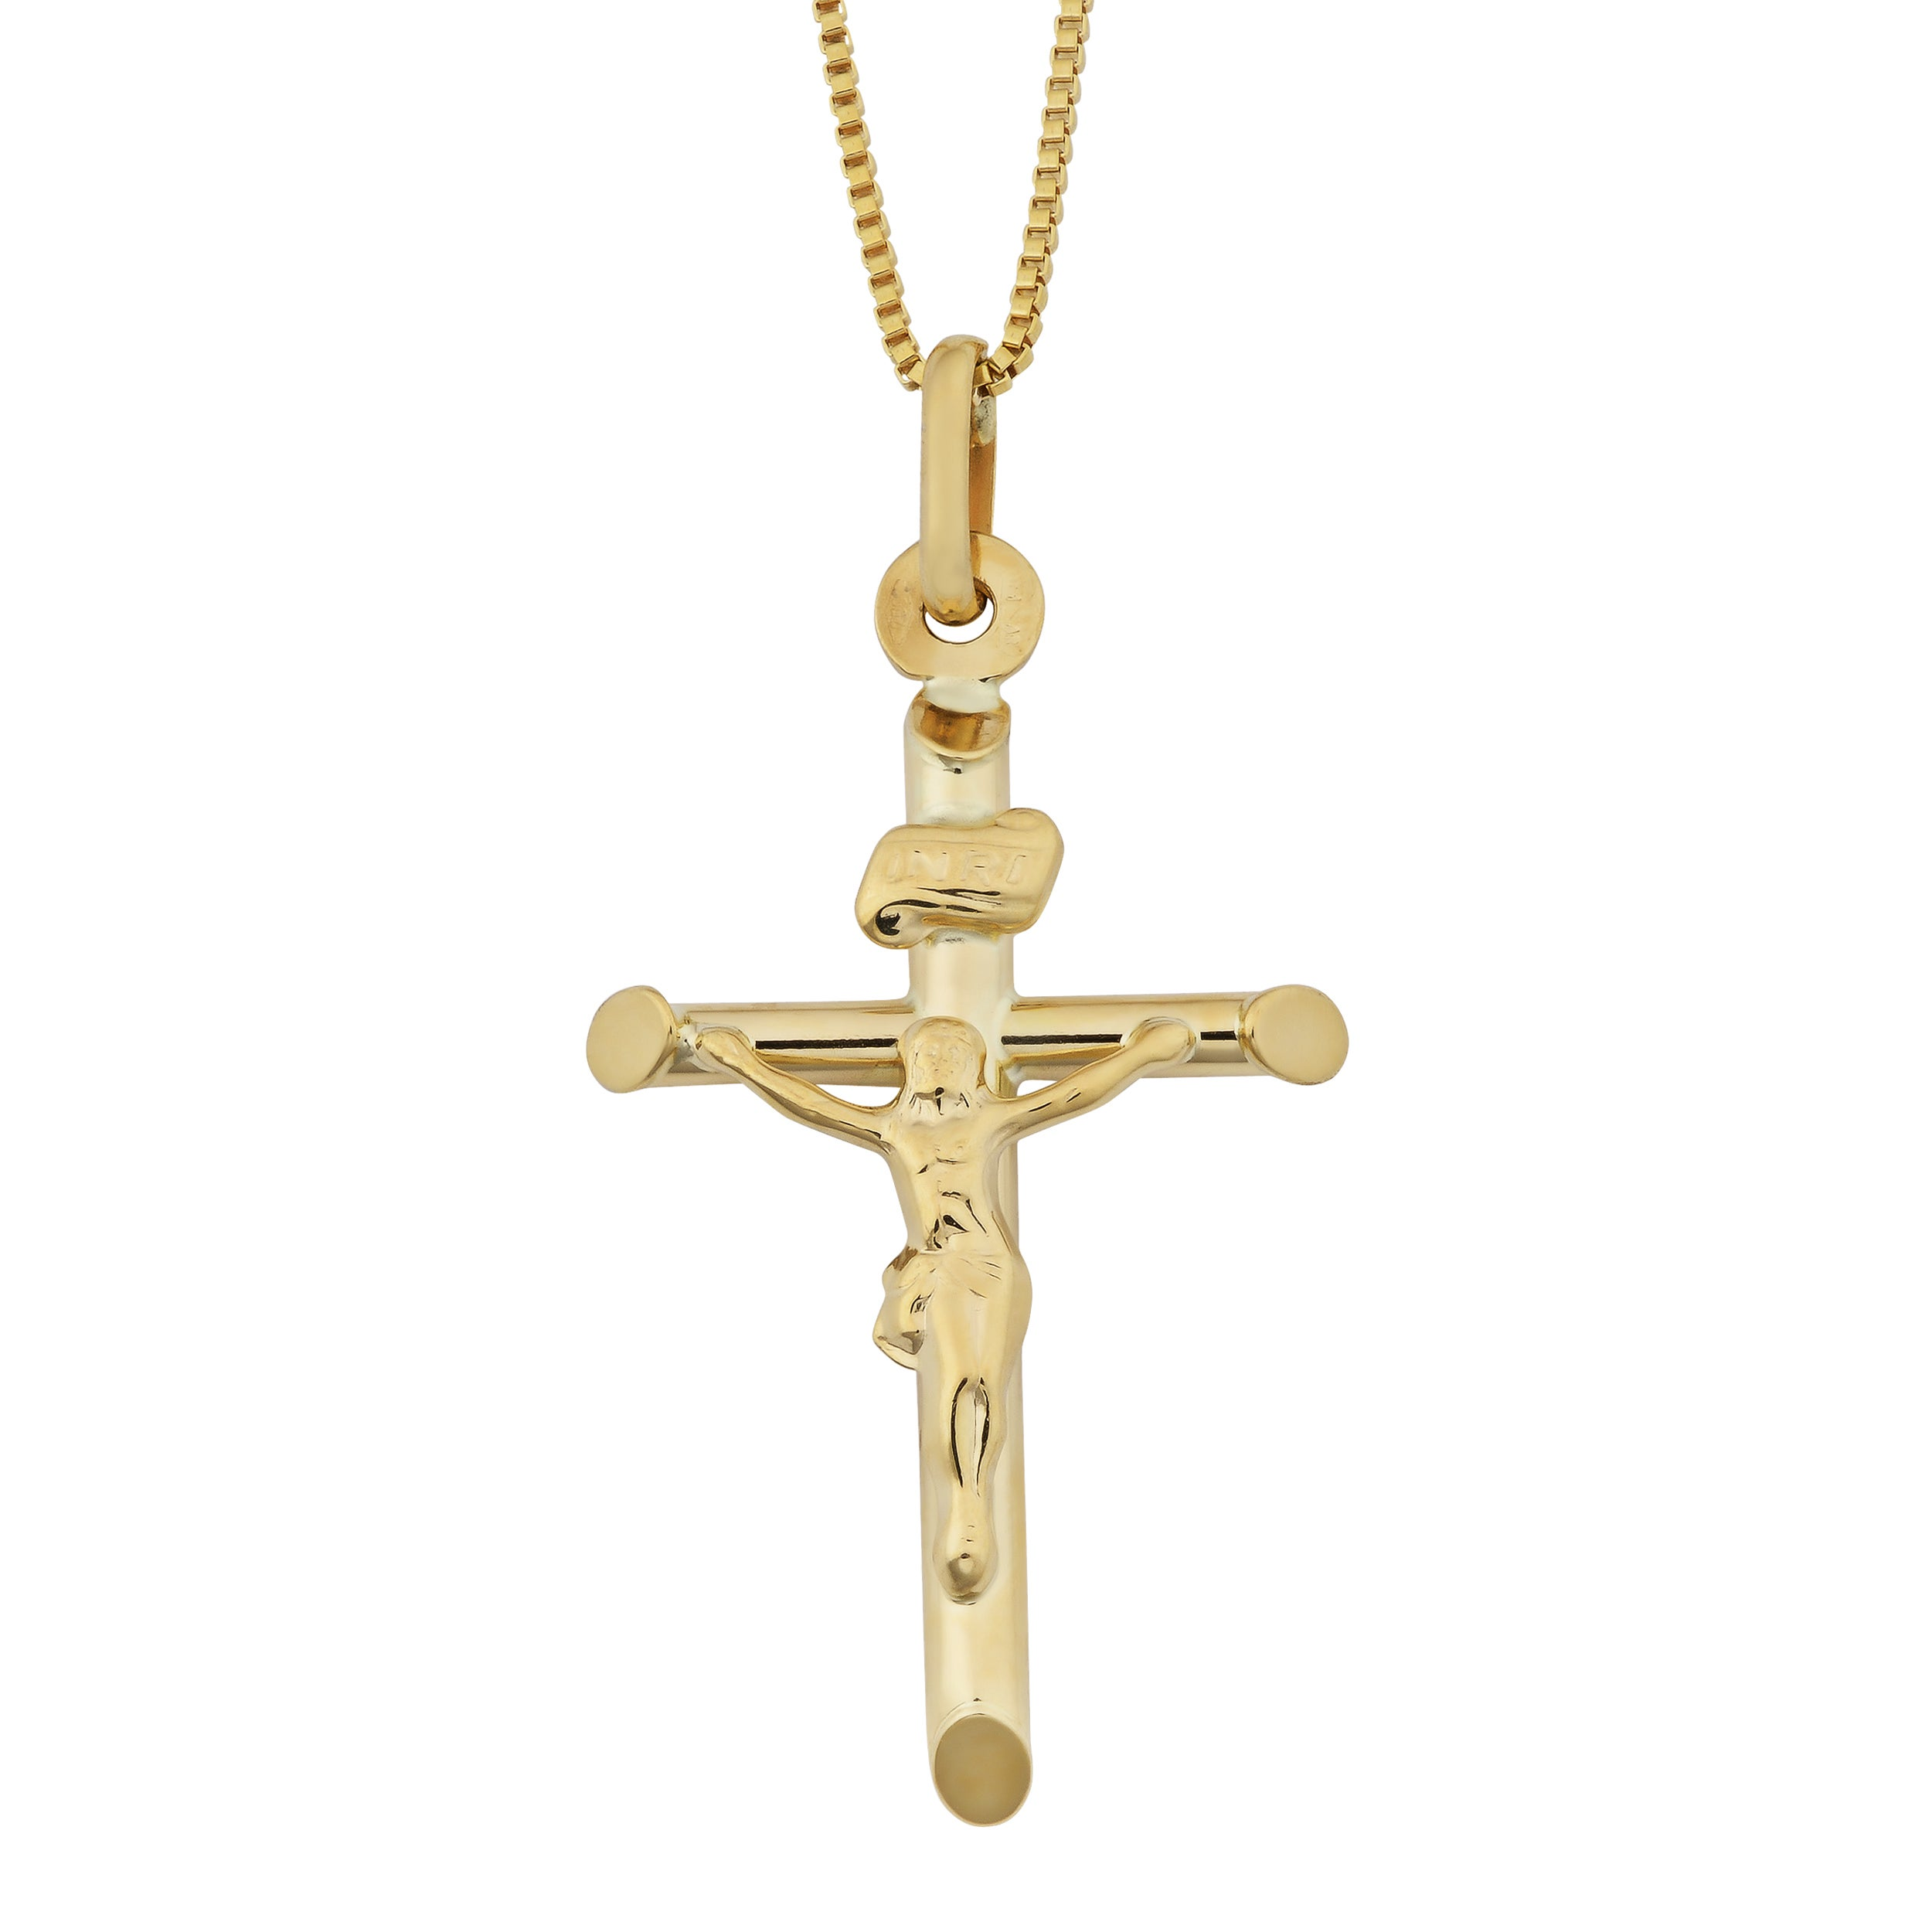 ed gold co fmt peretti jewelry mm in wid id pendants constrain tiffany elsa wide hei crucifix pendant fit necklaces